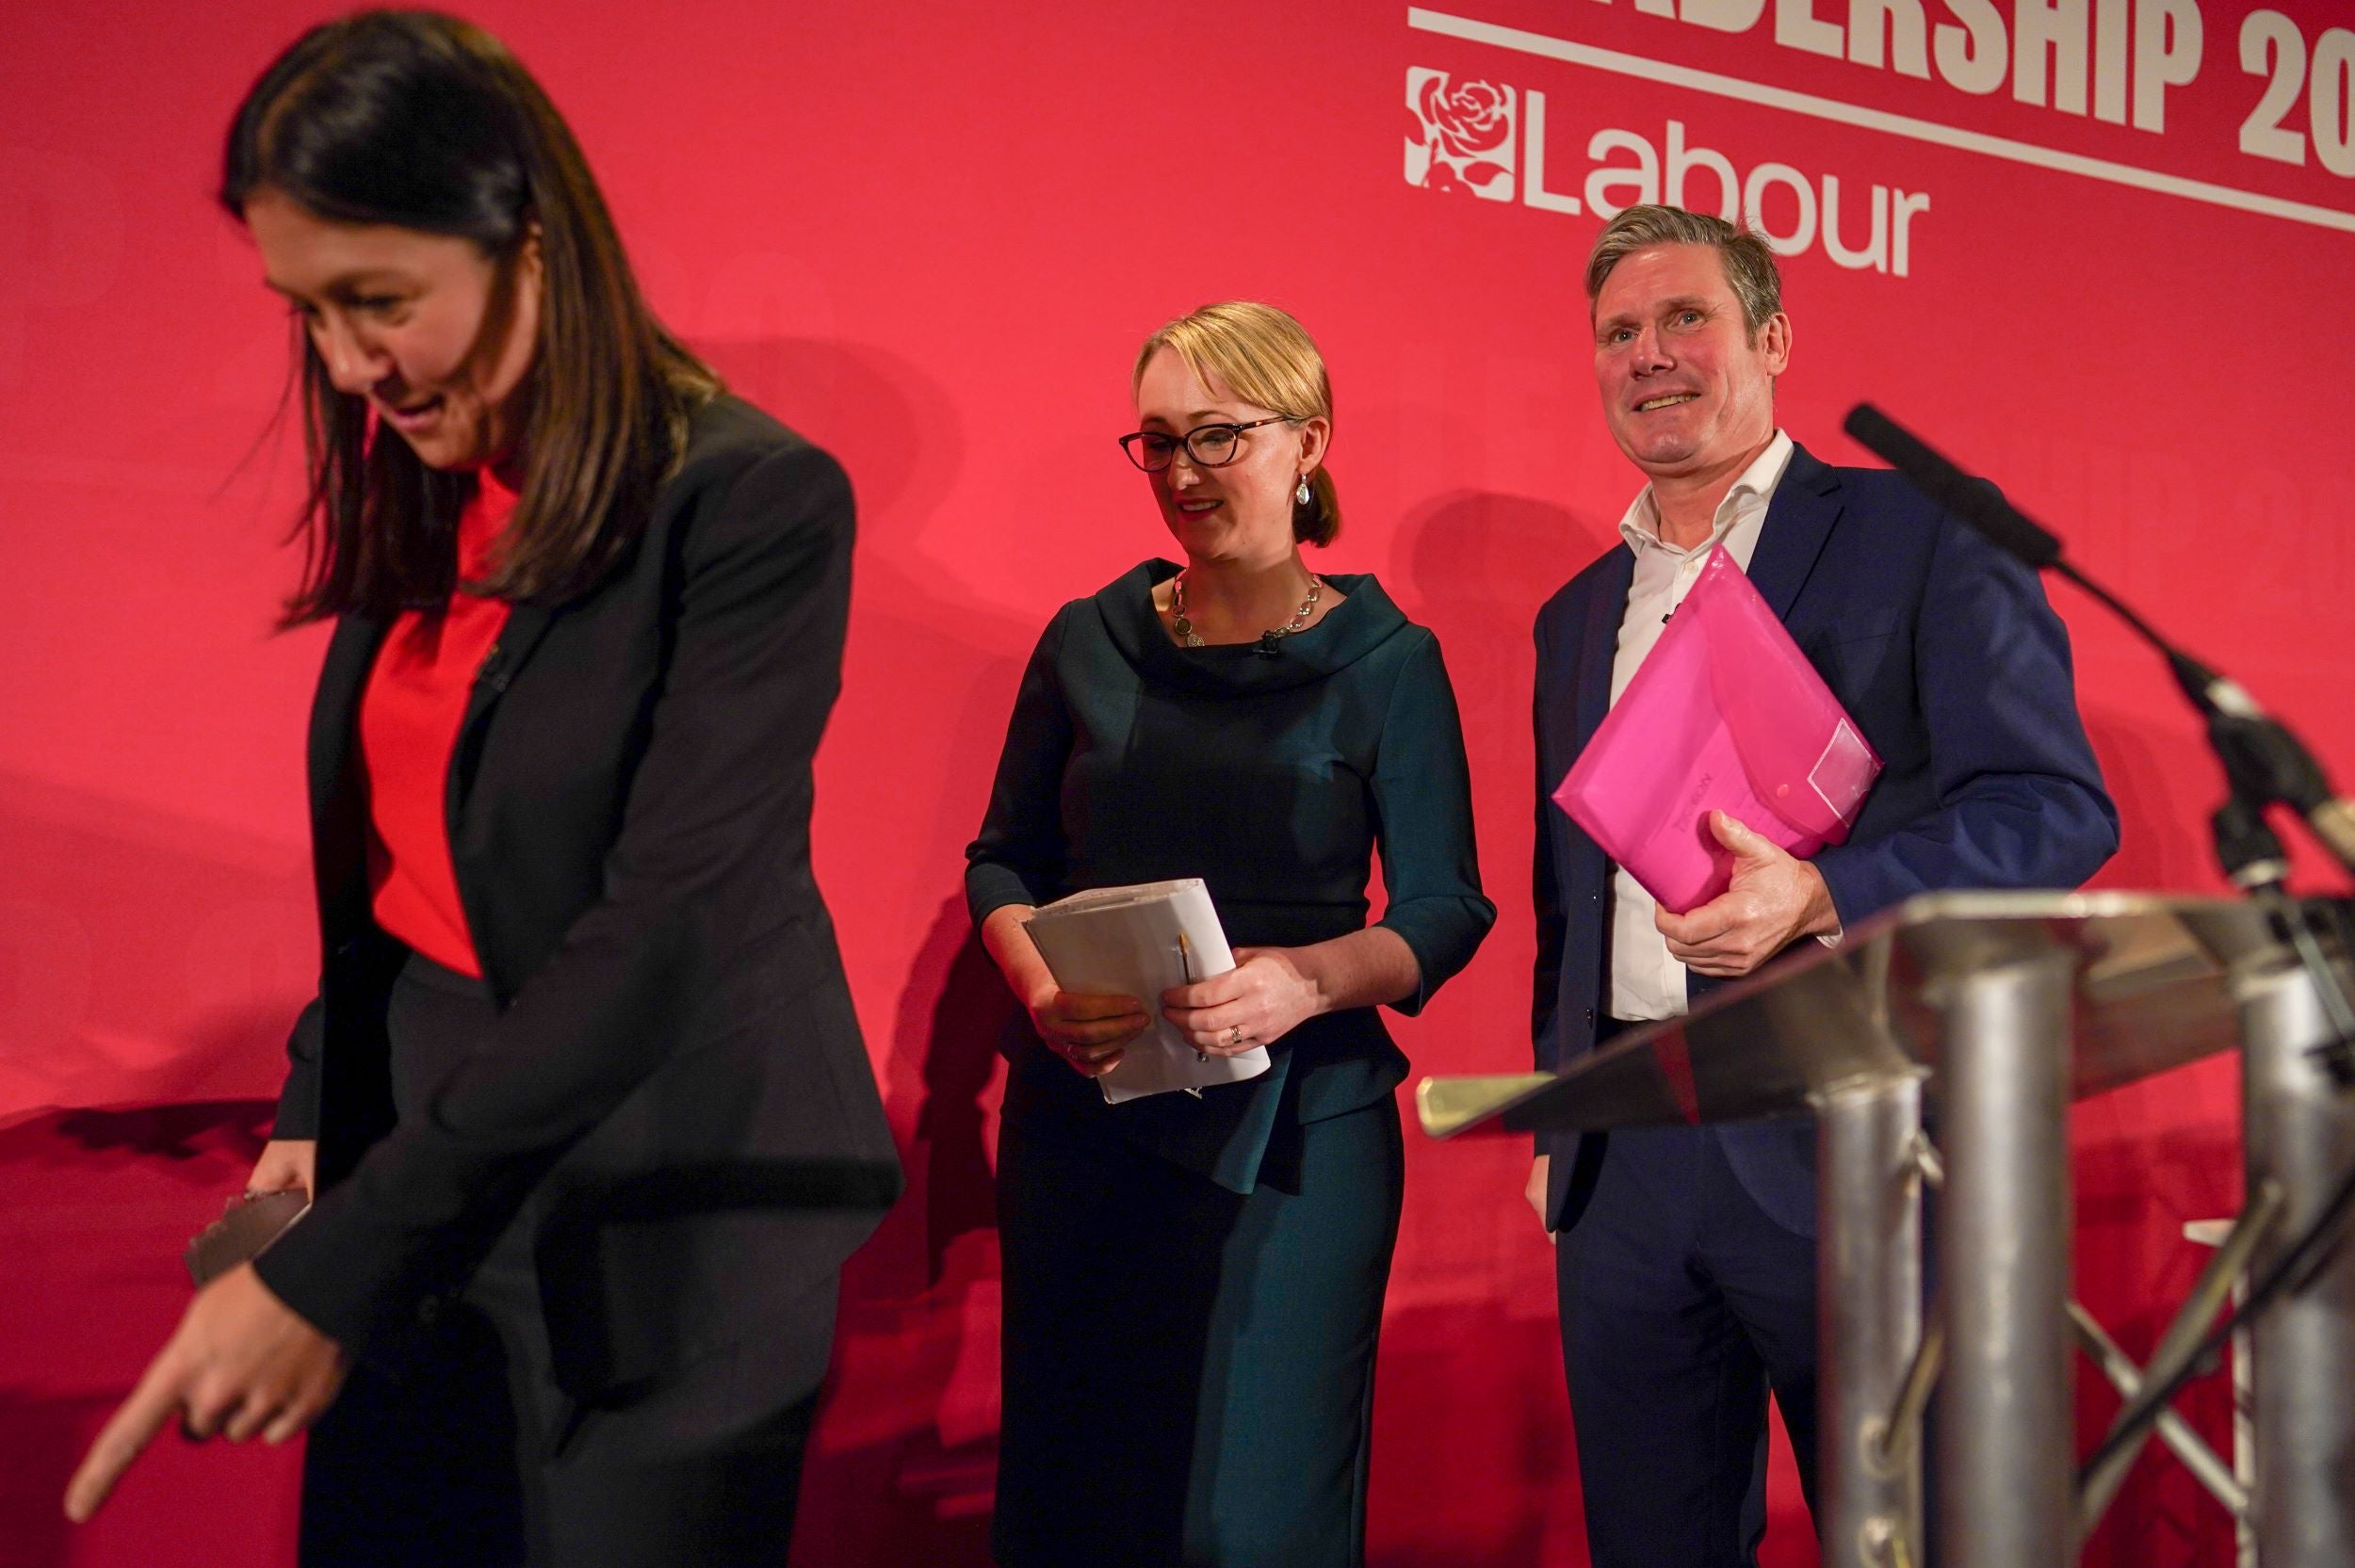 Polling: Where do Labour voters stand on trans rights, race and gender equality?